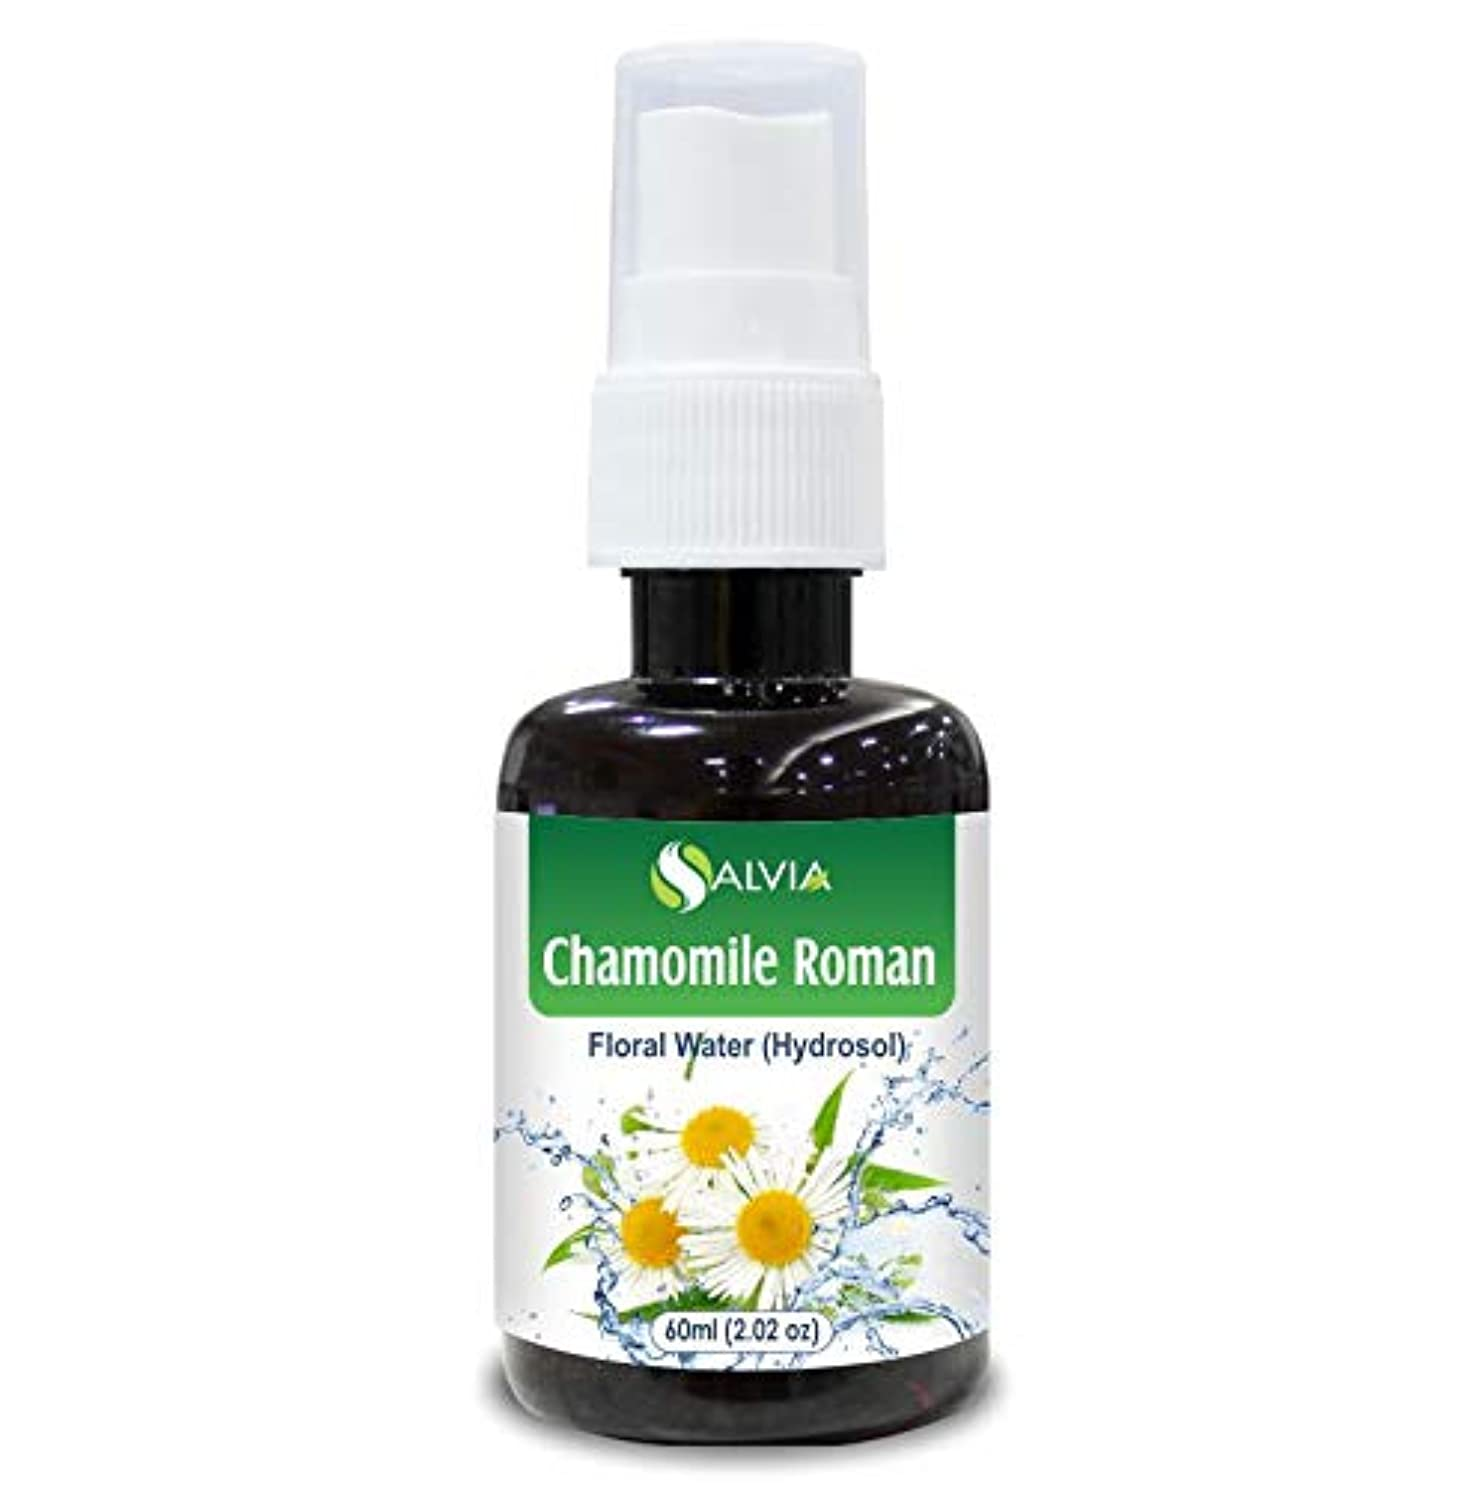 Chamomile Oil, Roman Floral Water 60ml (Hydrosol) 100% Pure And Natural